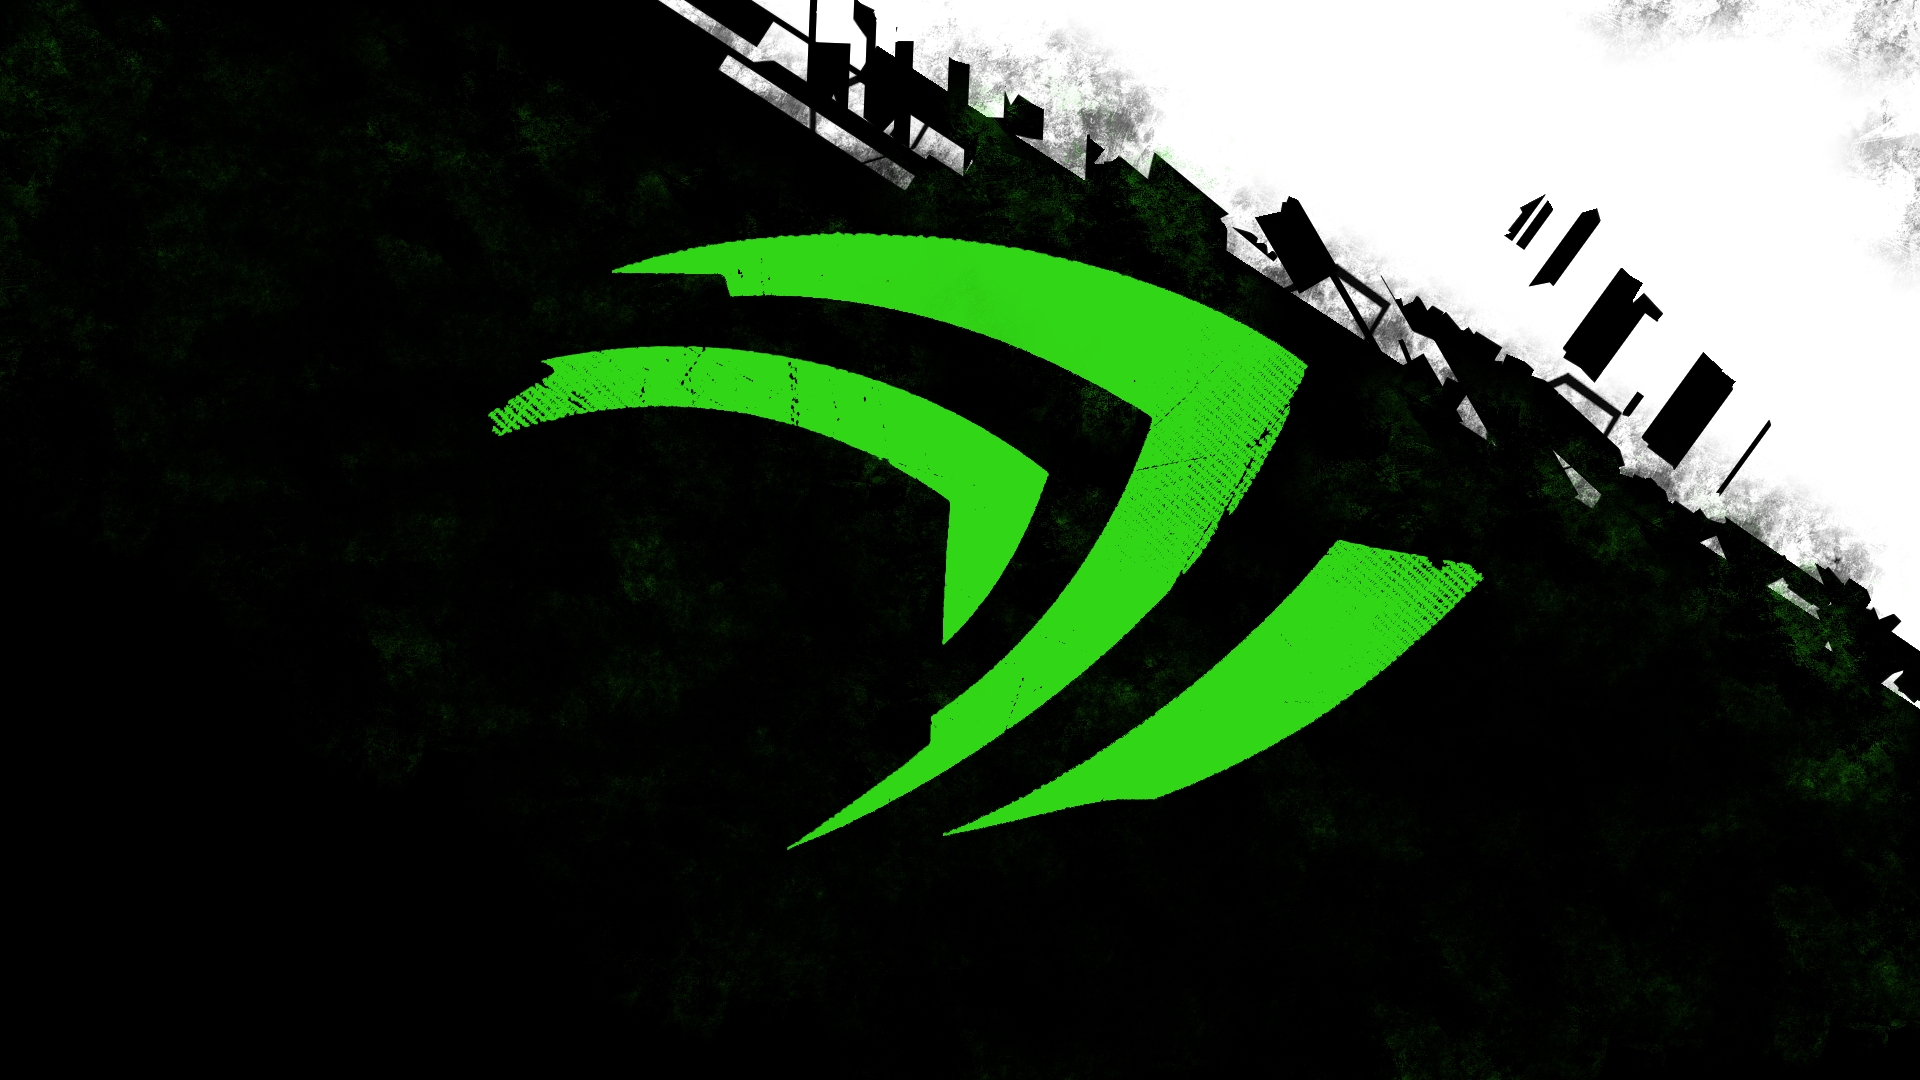 73 nvidia hd wallpapers | background images - wallpaper abyss